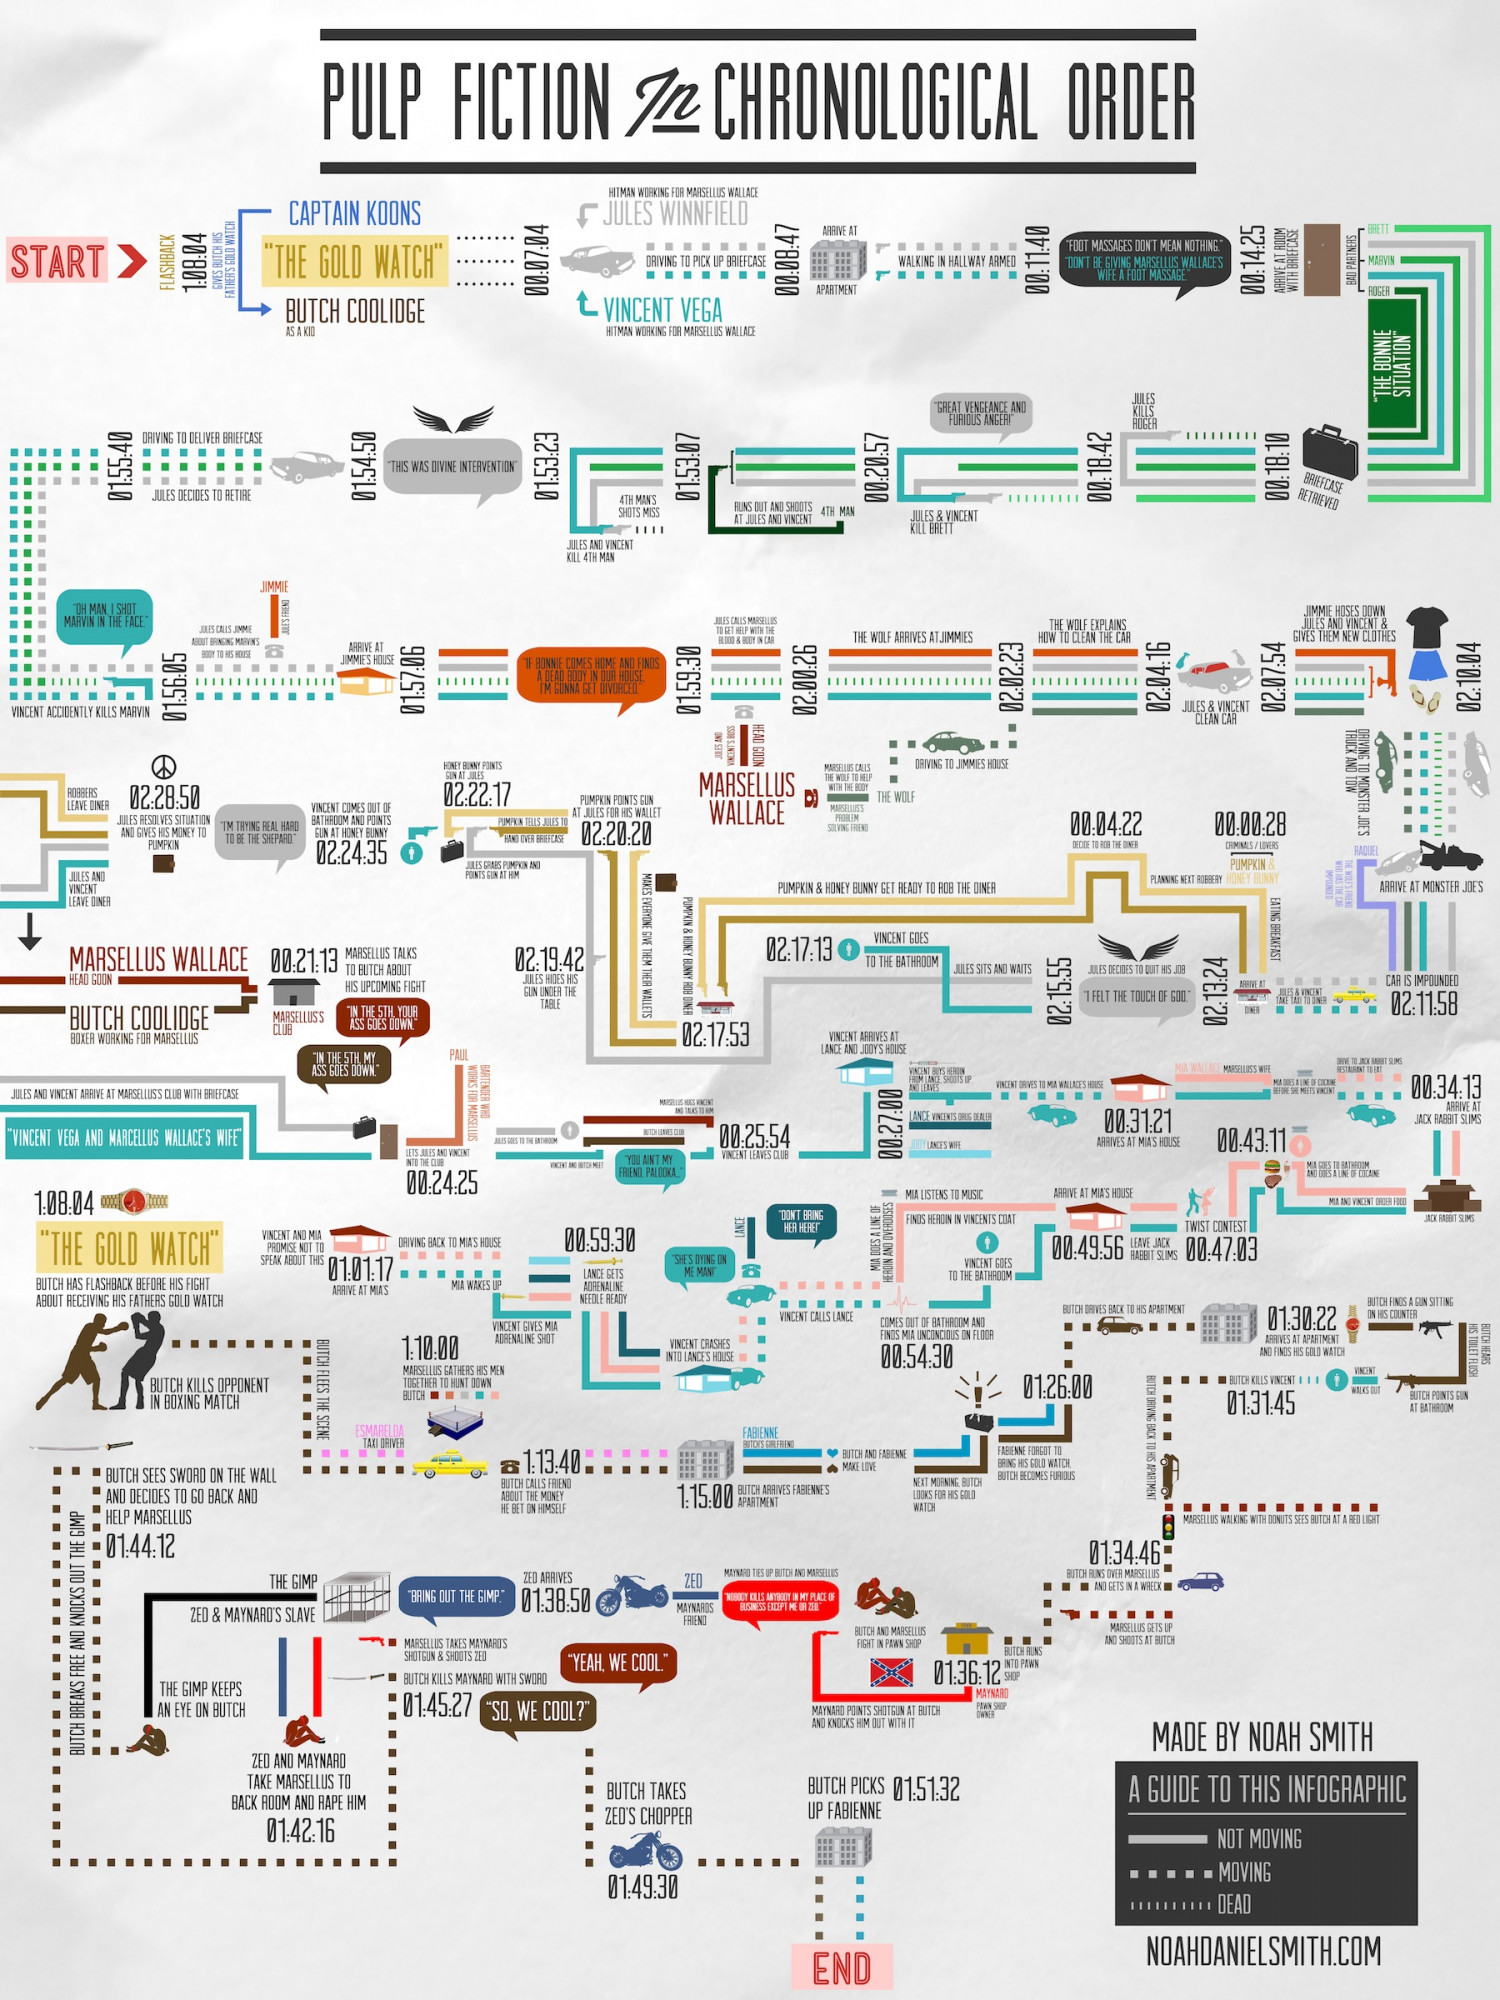 Pulp Fiction in Chronological Order Infographic